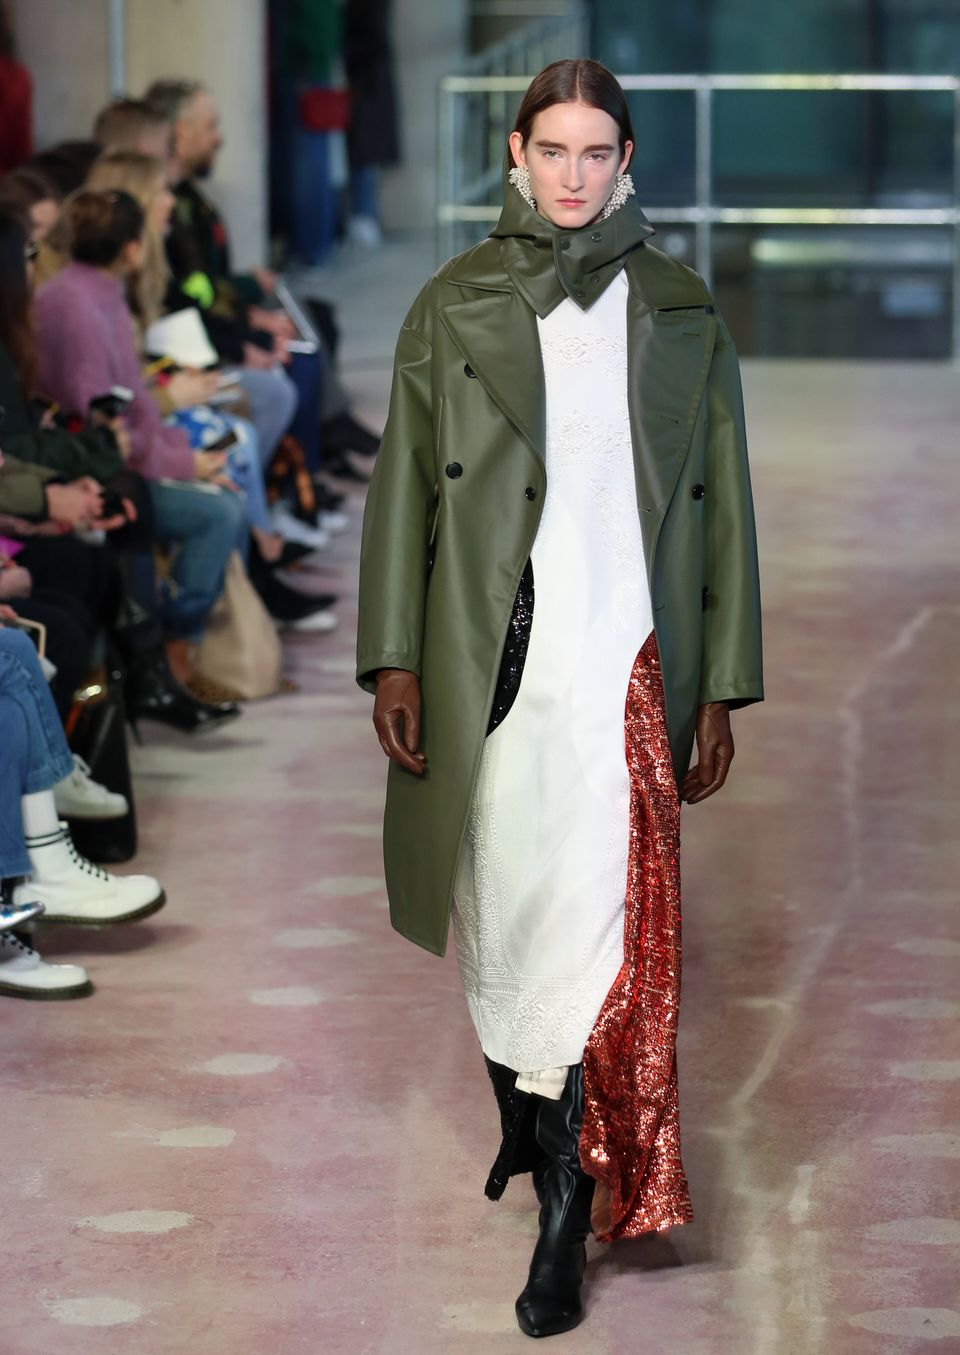 Fashion cult favourite TOGA also offered a block coat, this time in natural green